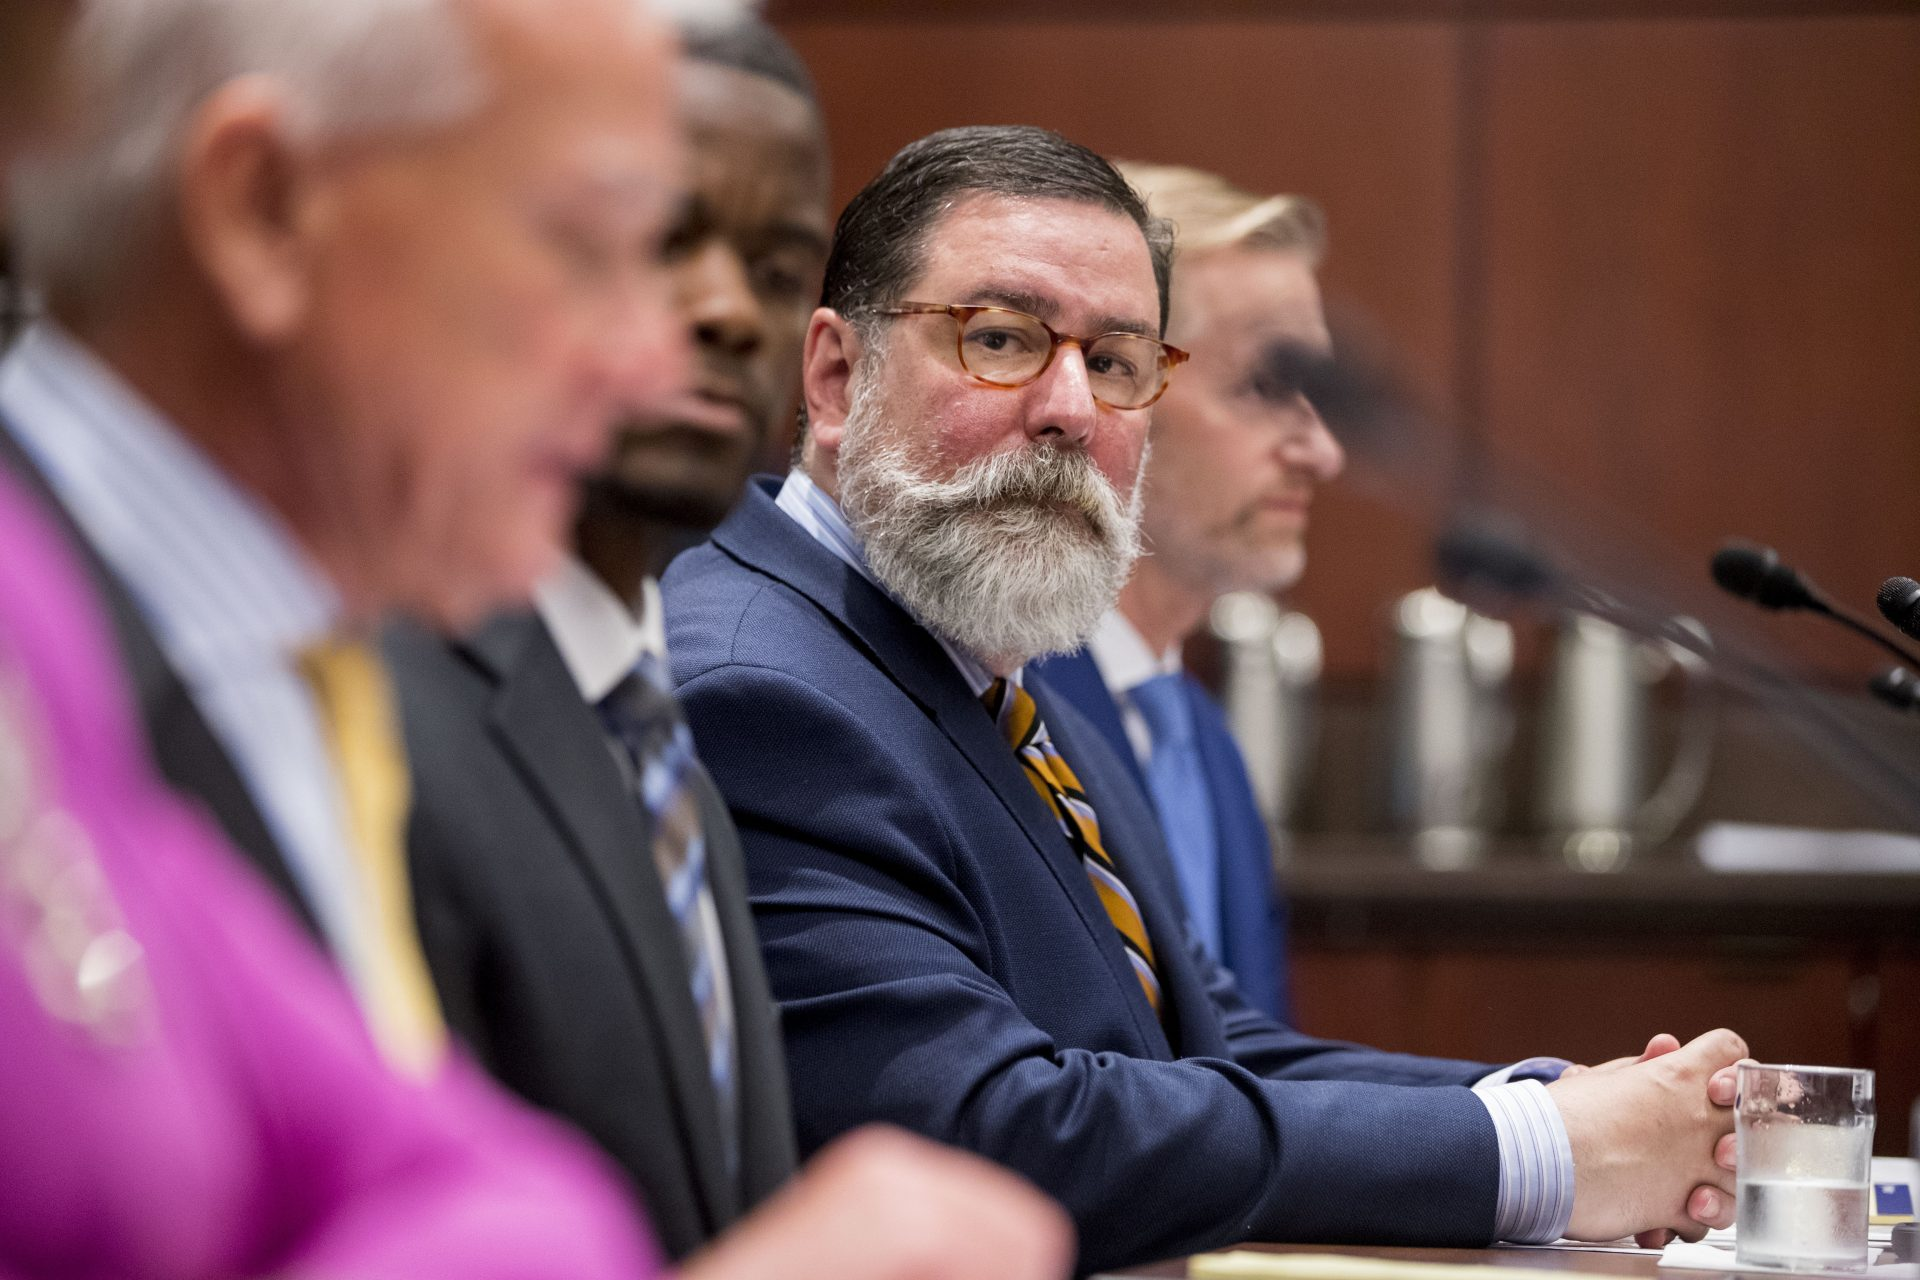 FILE PHOTO: Pittsburgh Mayor Bill Peduto appears before a Senate Democrats' Special Committee on the Climate Crisis on Capitol Hill in Washington, Wednesday, July 17, 2019.